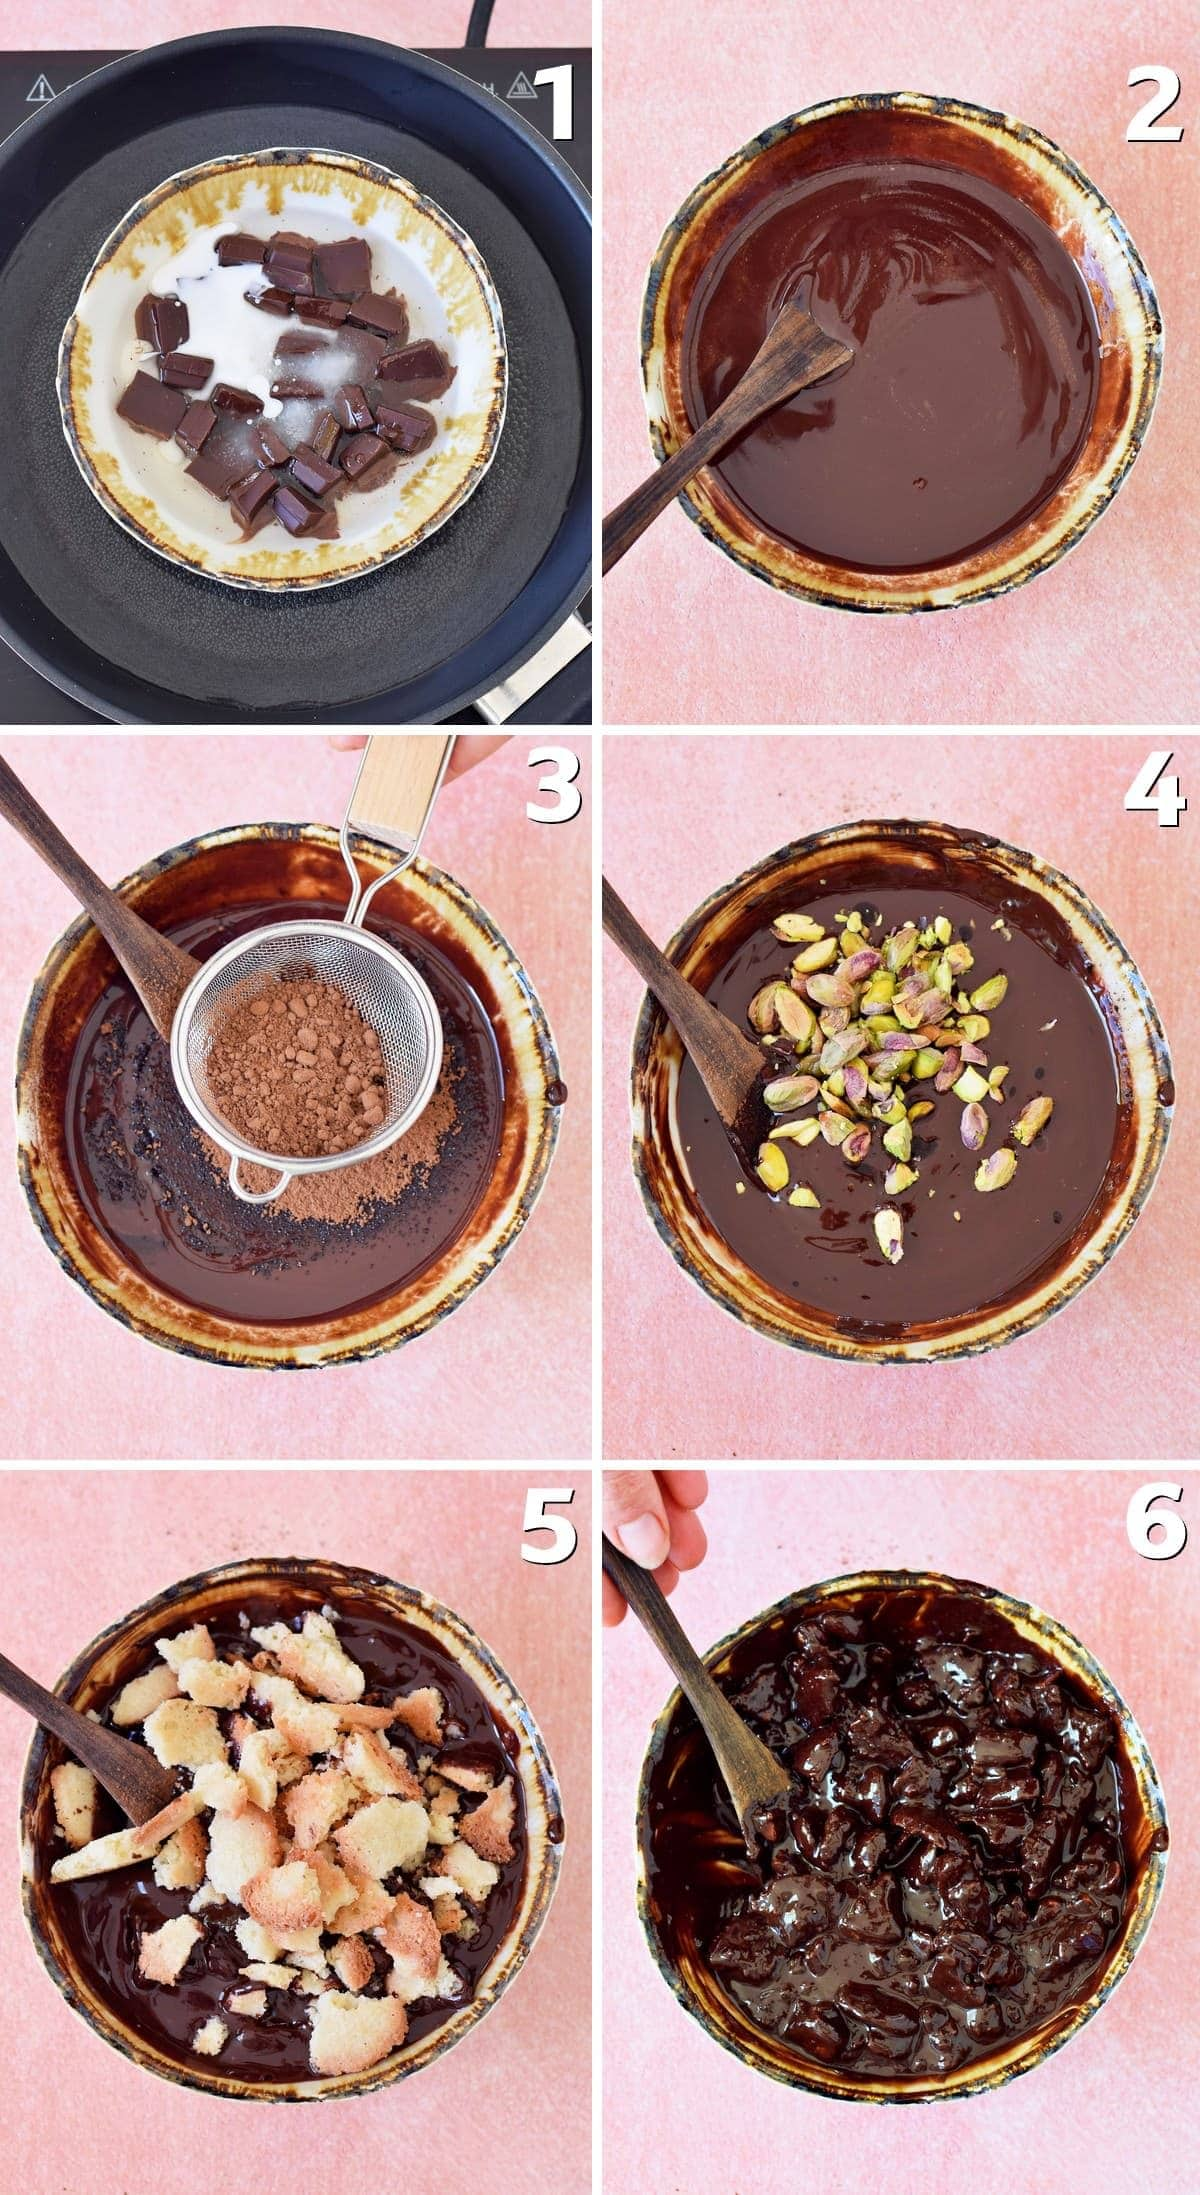 6 step-by-step photos of making salame di cioccolato